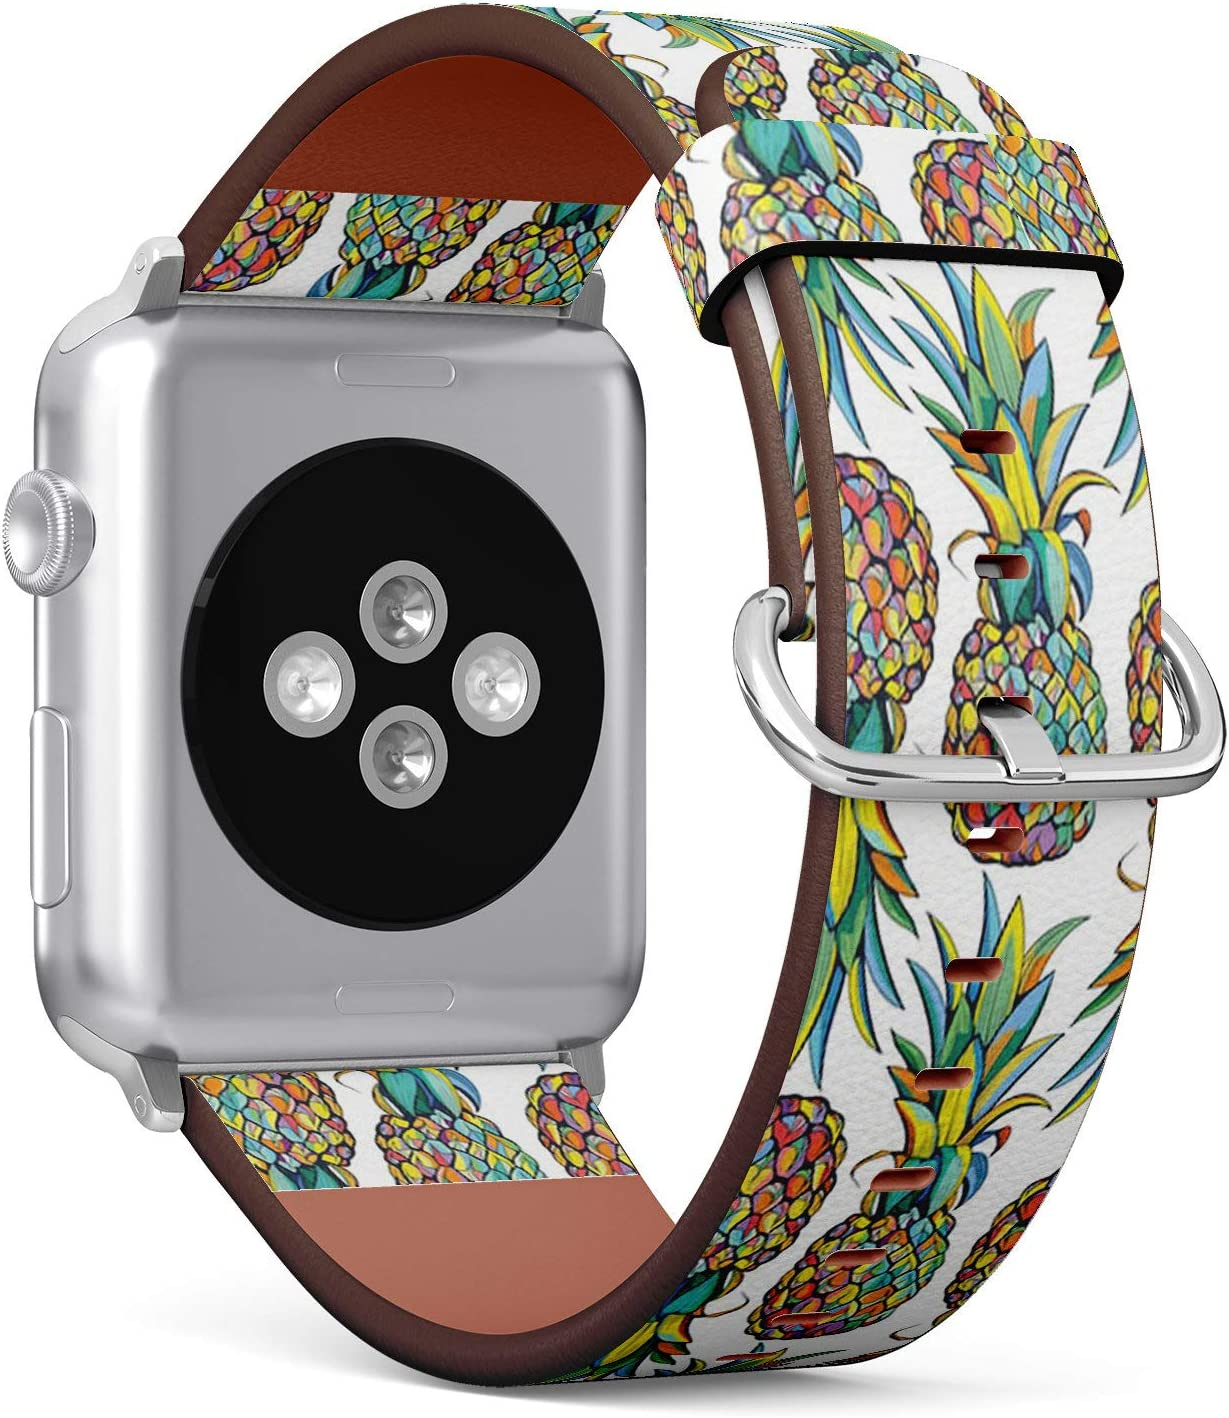 Compatible with Apple Watch 38mm & 40mm (Series 5, 4, 3, 2, 1) Leather Watch Wrist Band Strap Bracelet with Stainless Steel Clasp and Adapters (Pineapples)